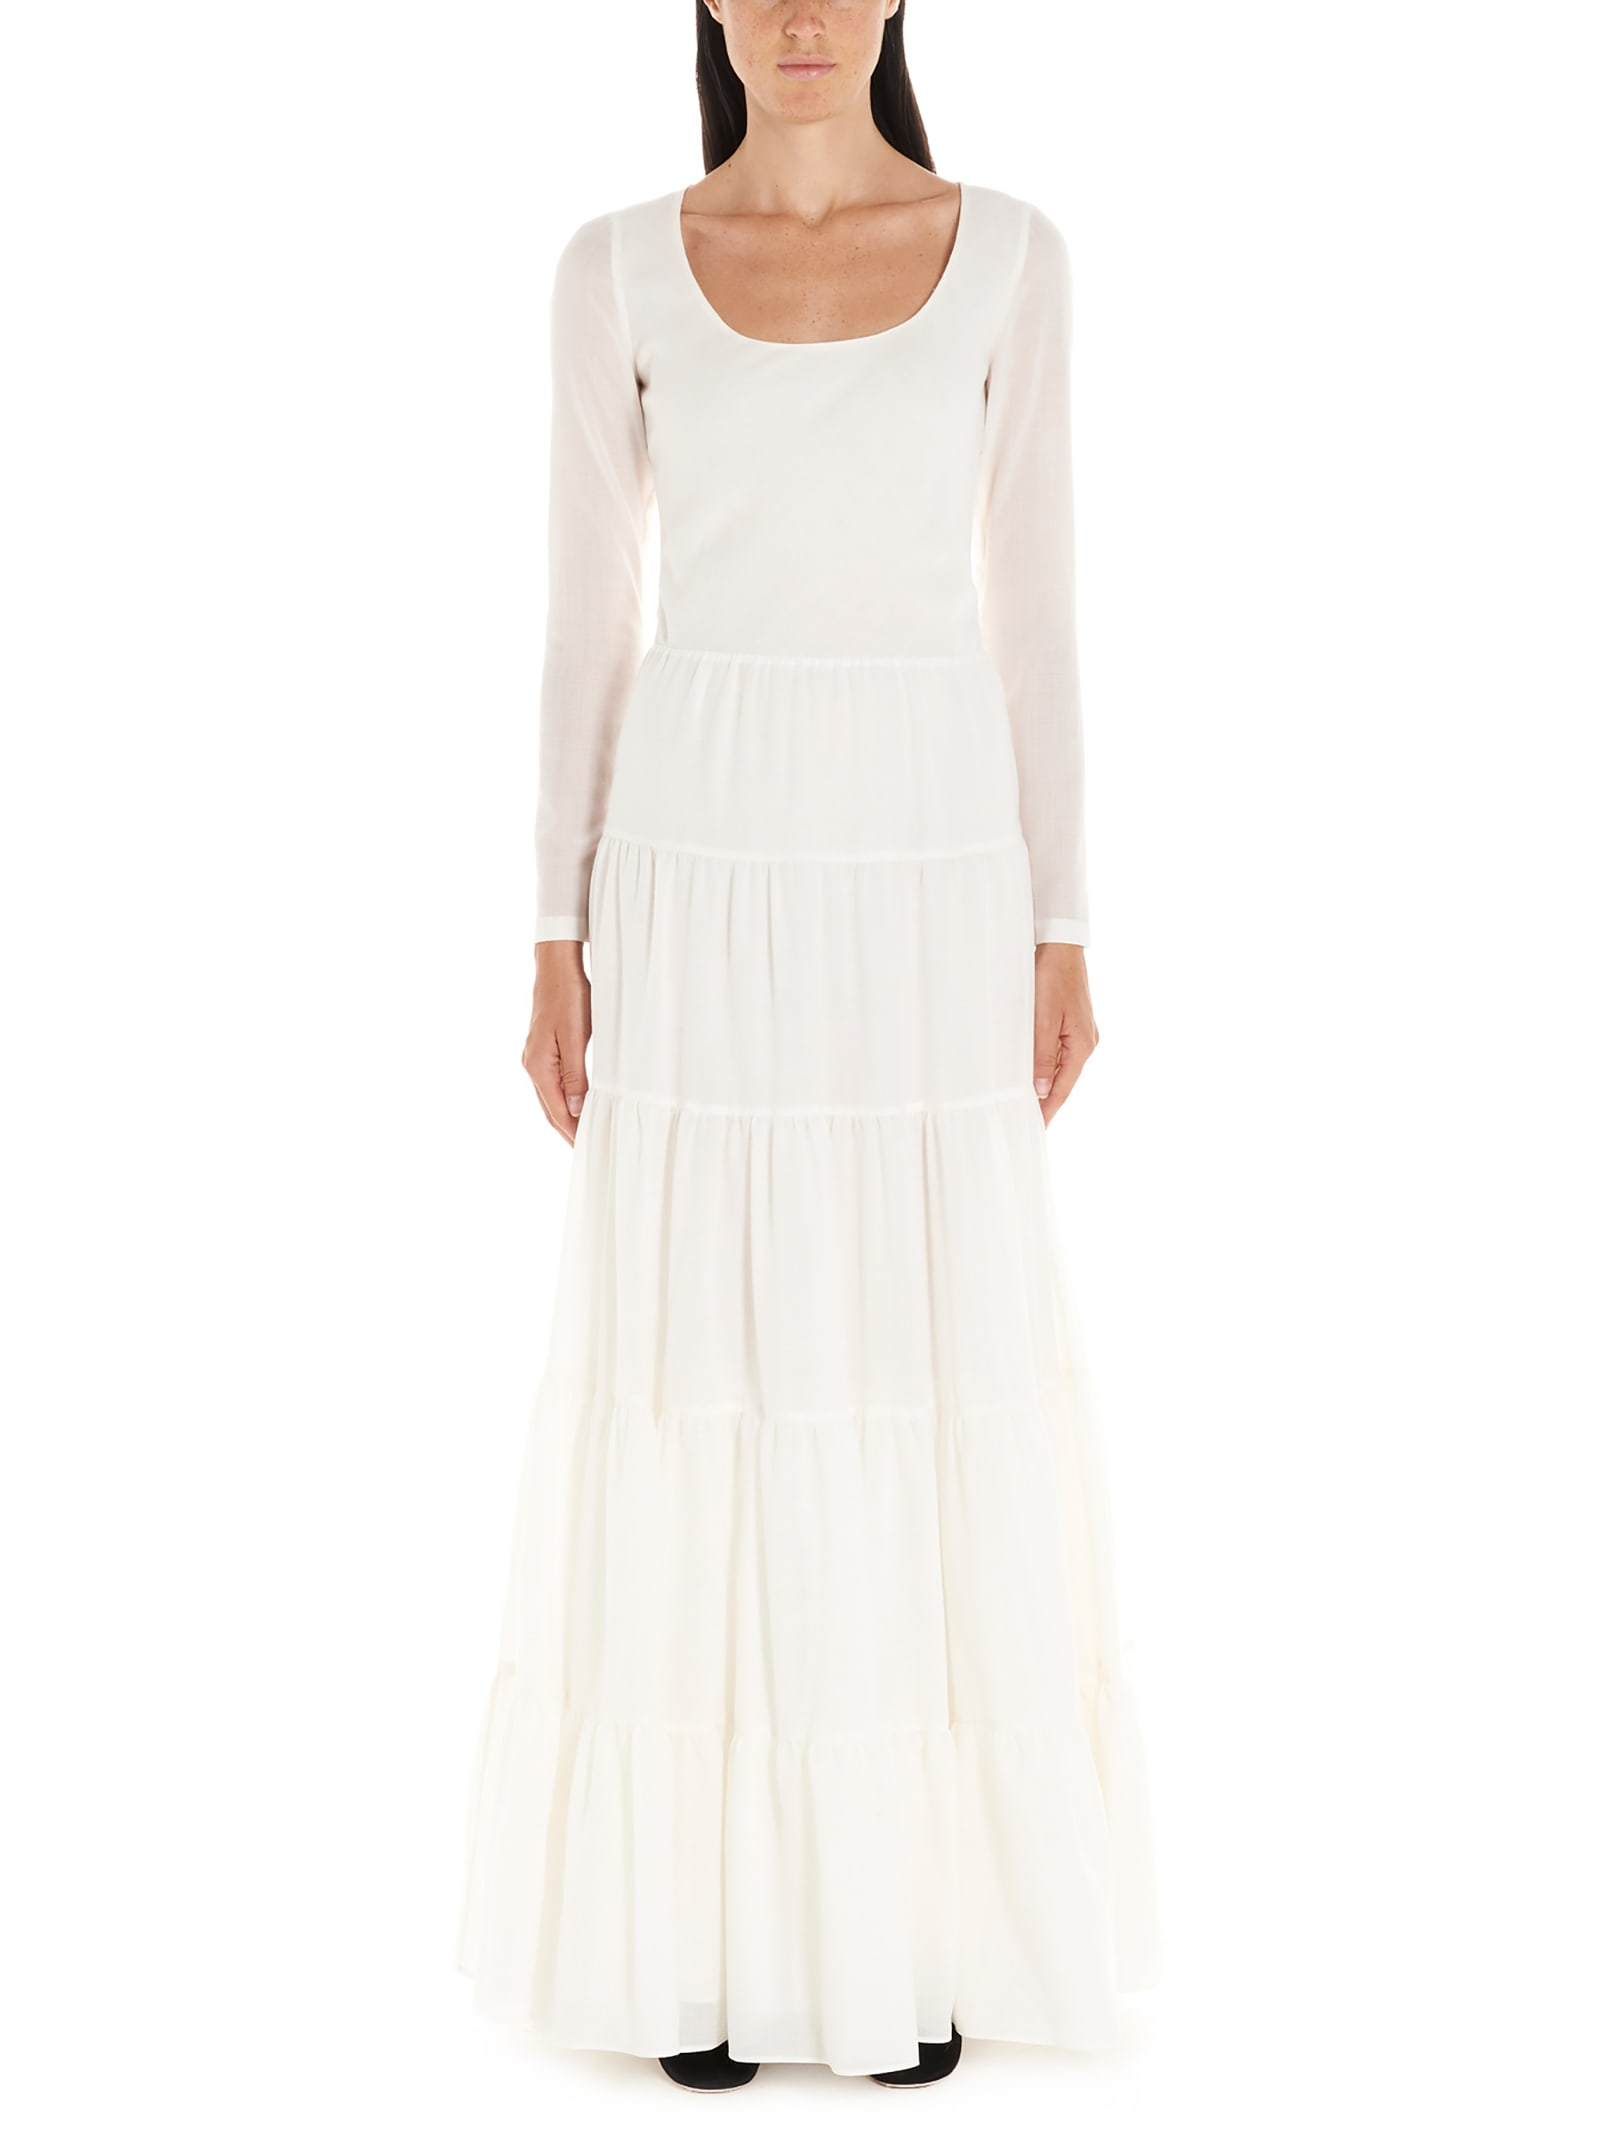 Buy Gabriela Hearst slava Dress Dress online, shop Gabriela Hearst with free shipping